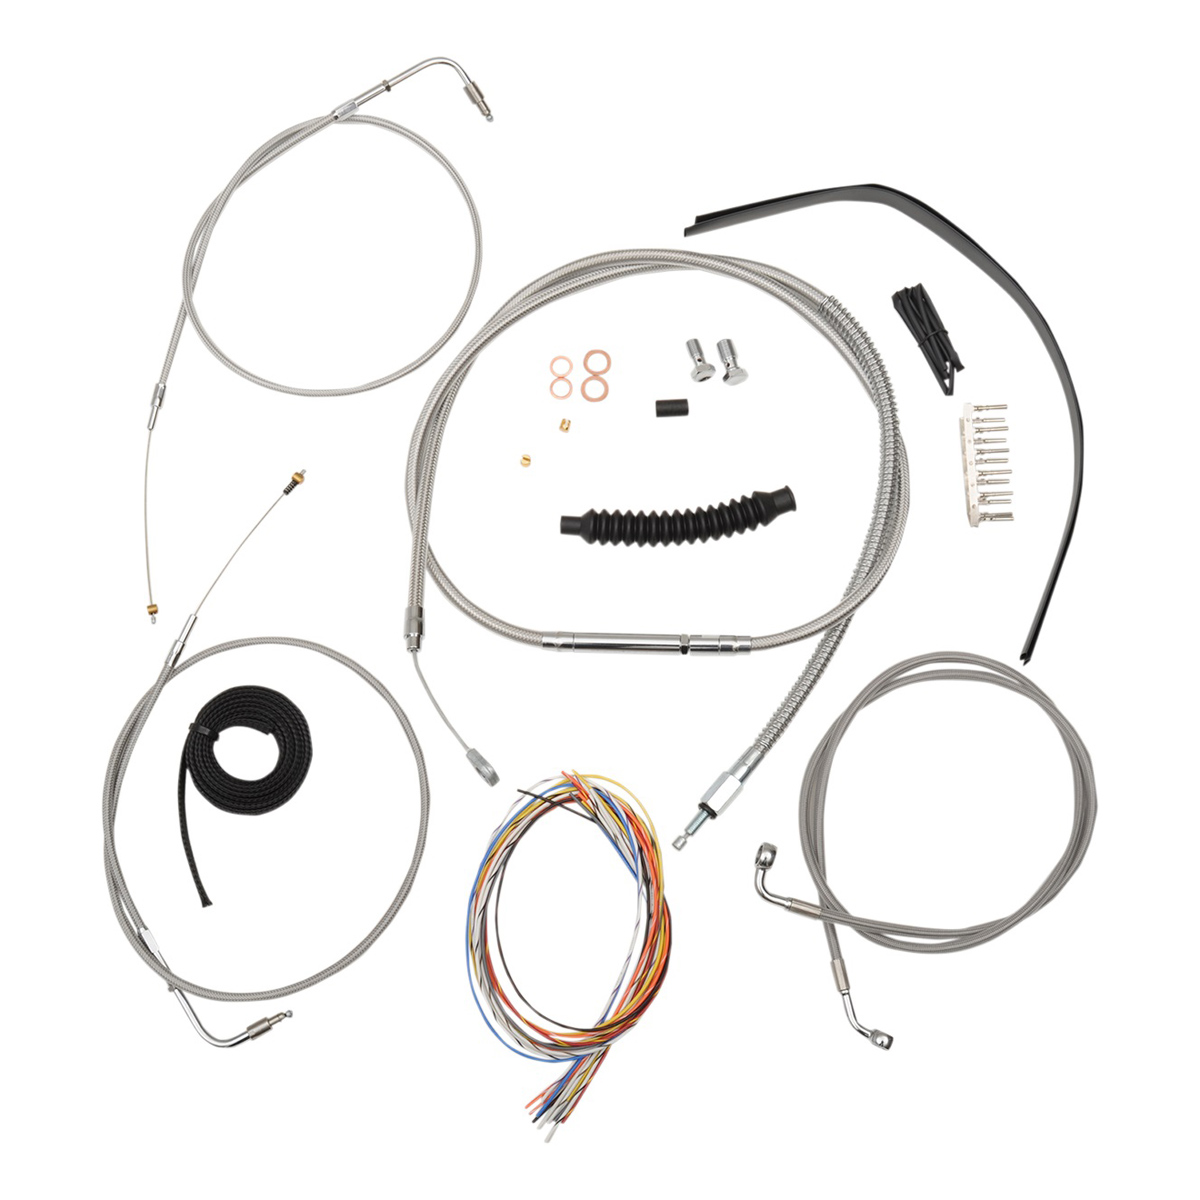 LA Choppers Stainless Complete Cable/Line/Wiring Handlebar Kit for 18″-20″ Bars